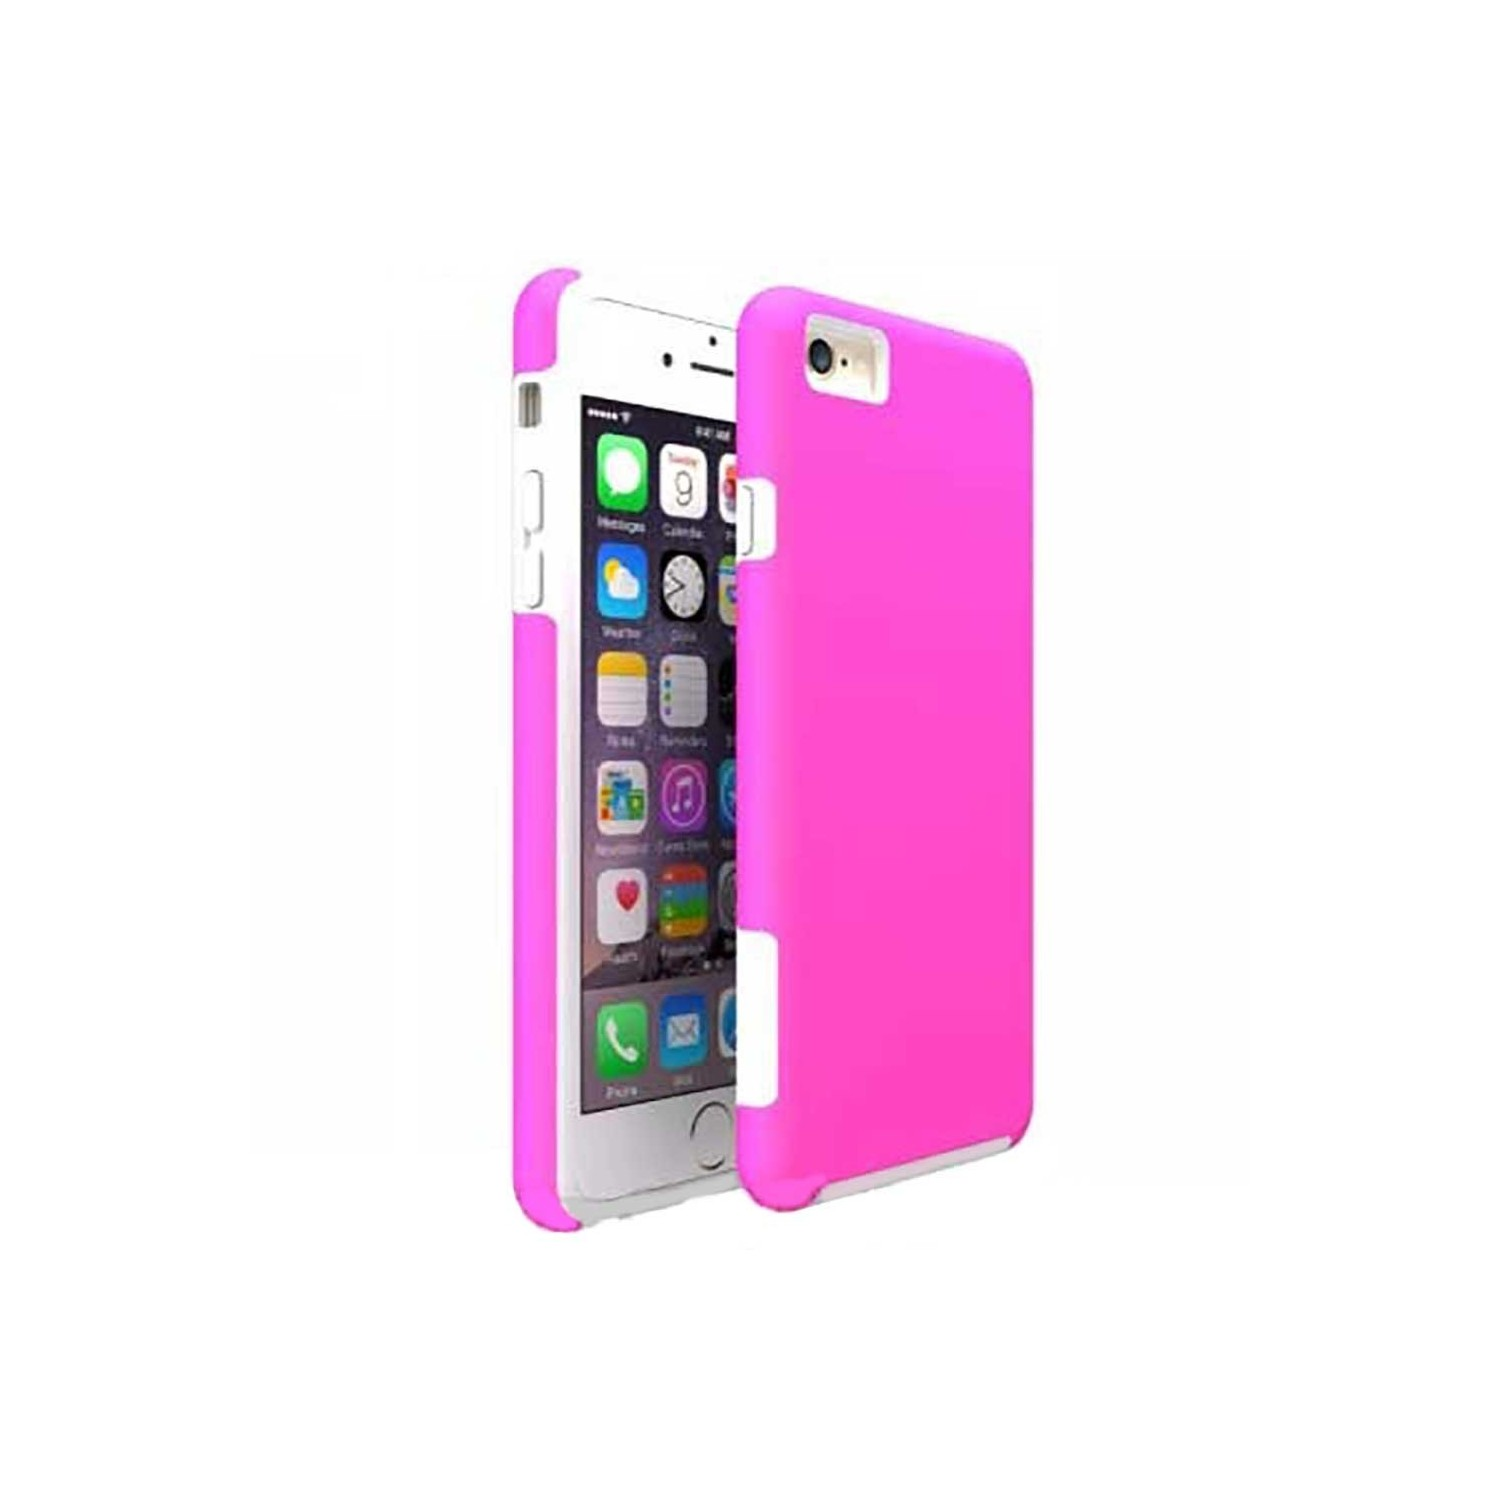 Case -  ArtsCase StrongFit for iPhone 6/6s Pink White